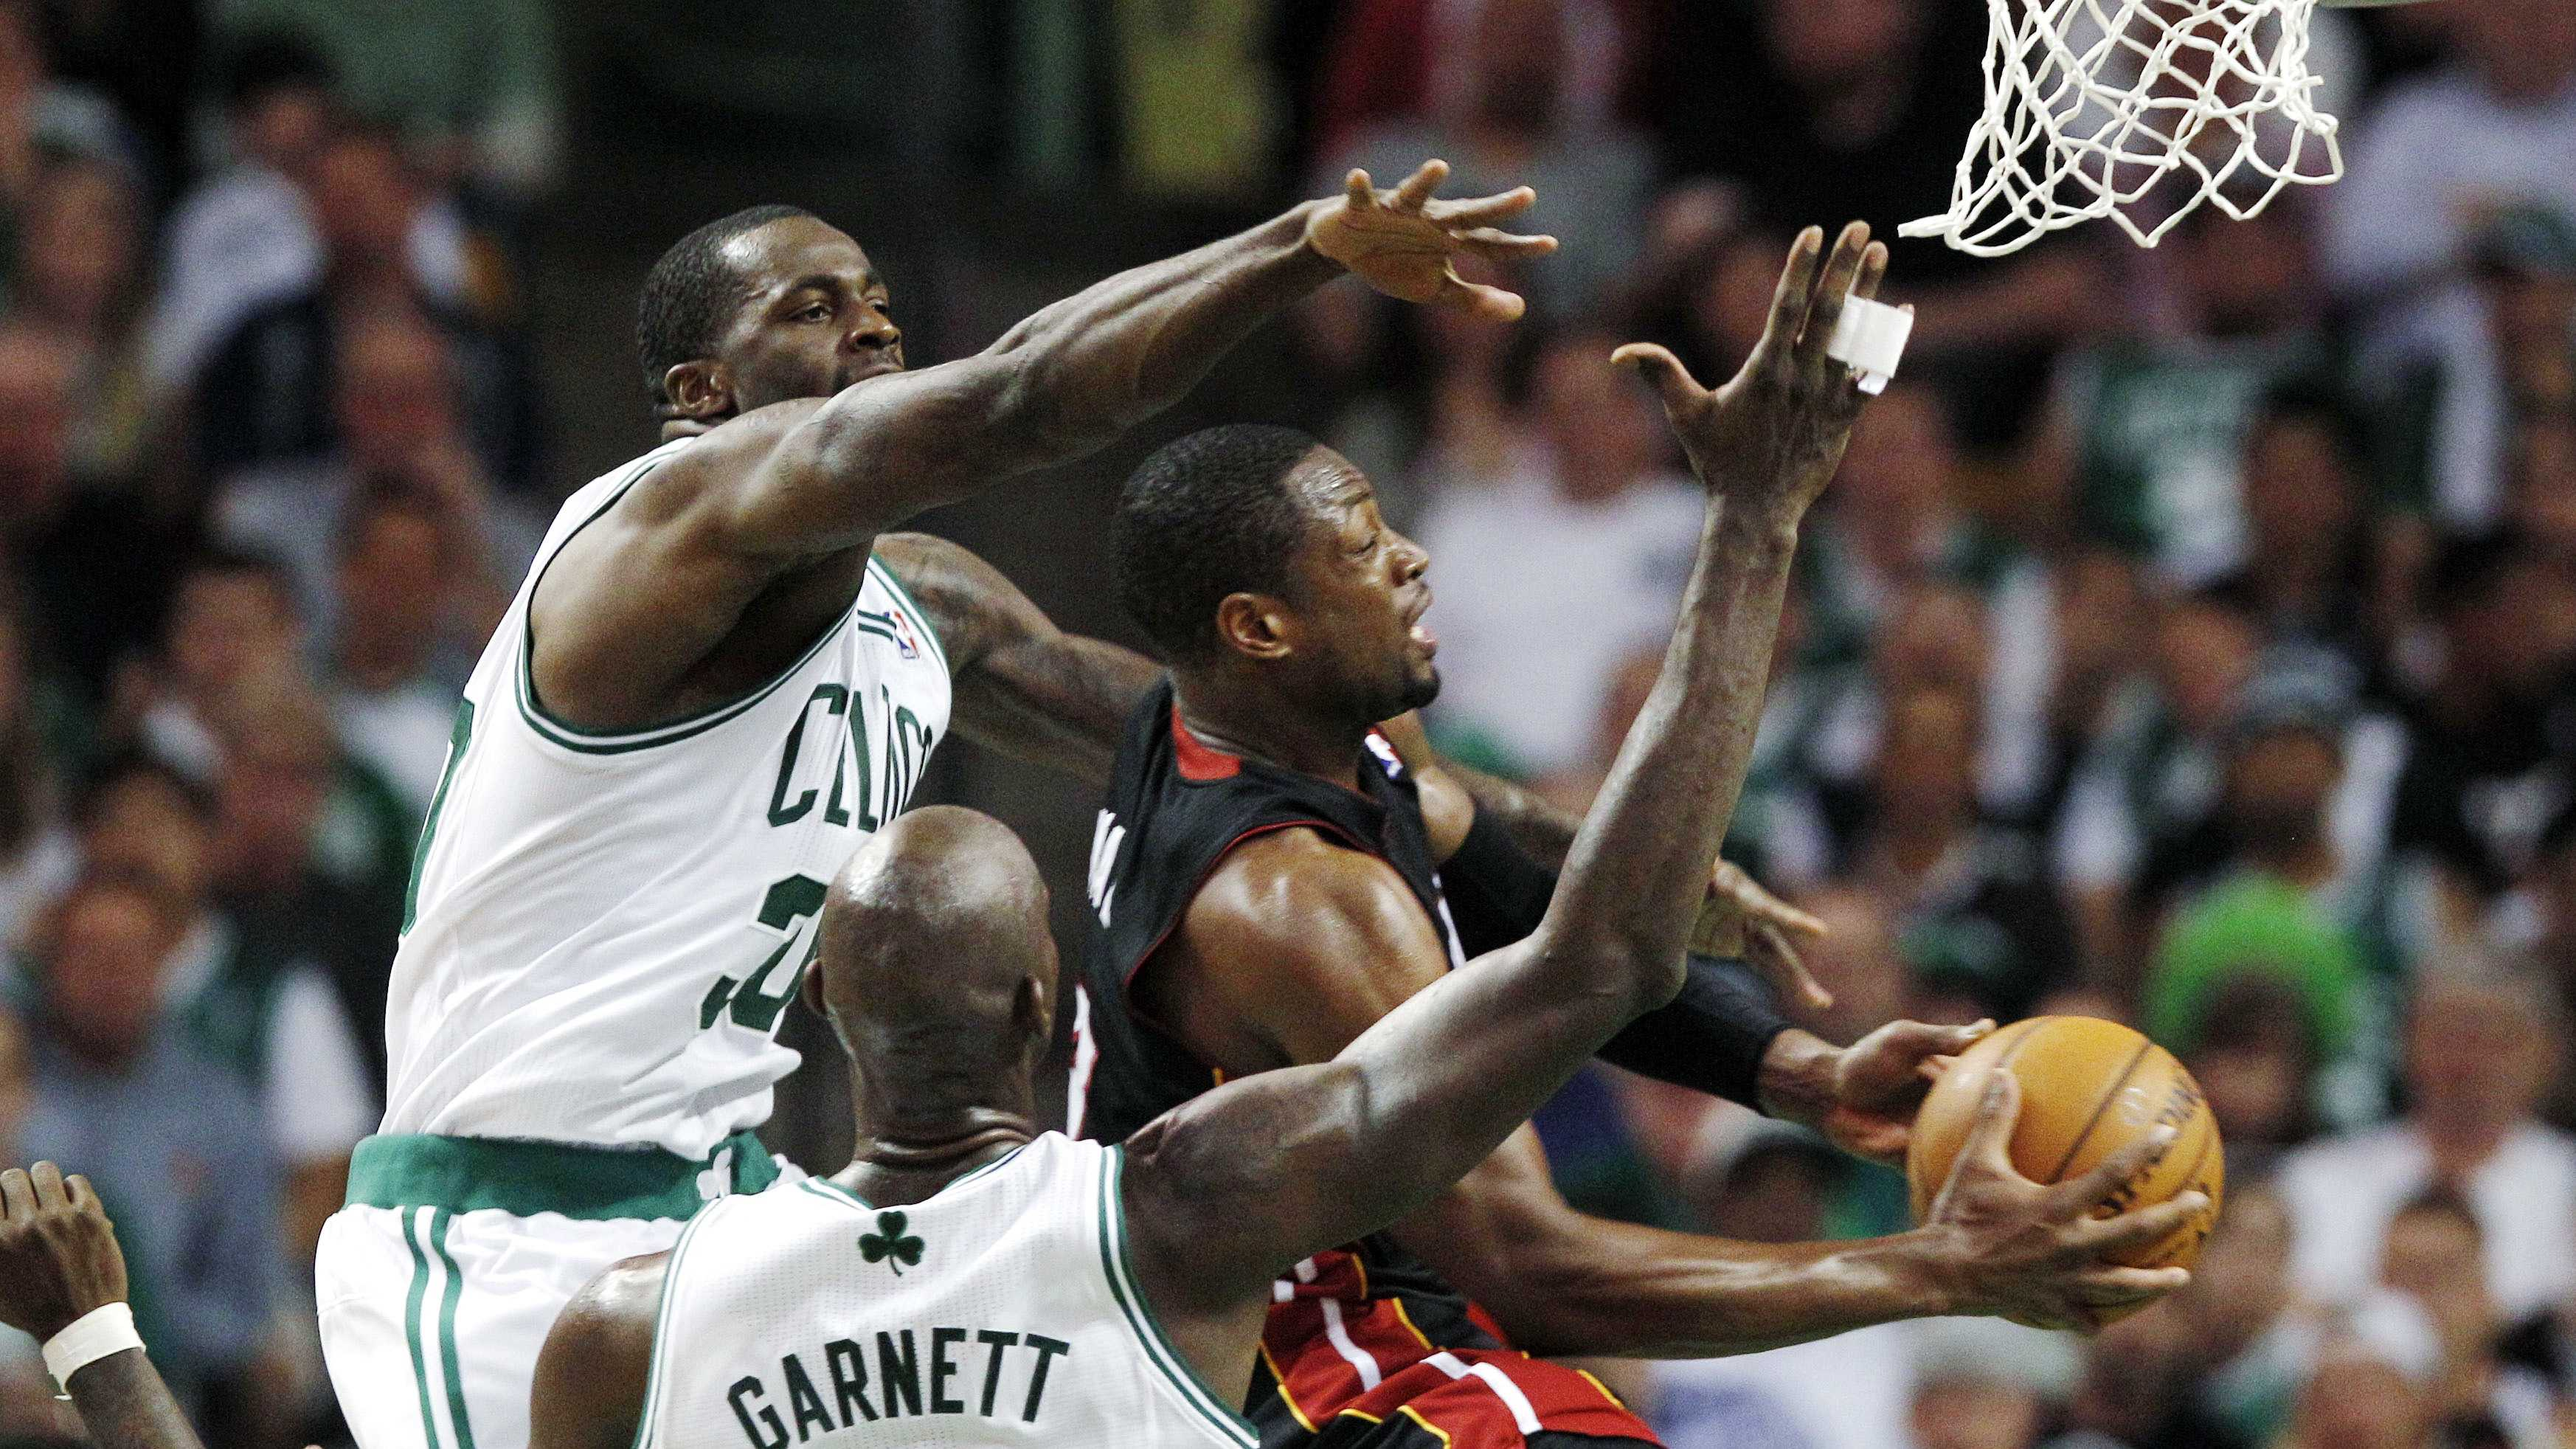 Miami Heat guard Dwyane Wade drives against Boston Celtics forwards Kevin Garnett and Brandon Bass.